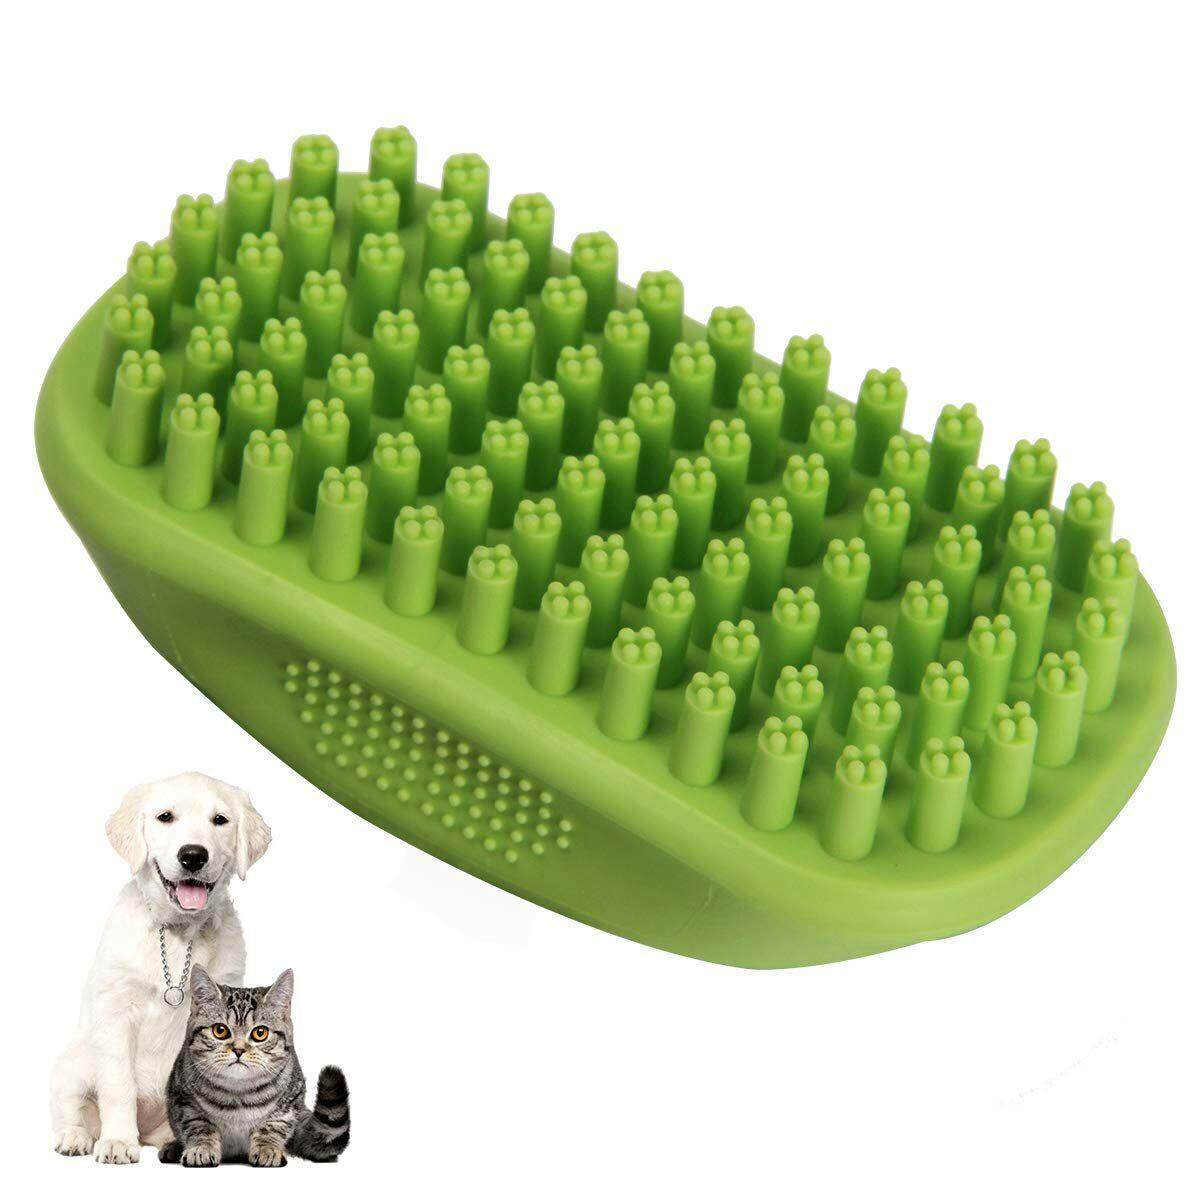 Pet Bath & Massage Brush Comb By Great Grooming Tool With Soft Bristles For Long & Short Hair Medium Large Pets Dogs Cats Shampooing And Shower By Ertic.